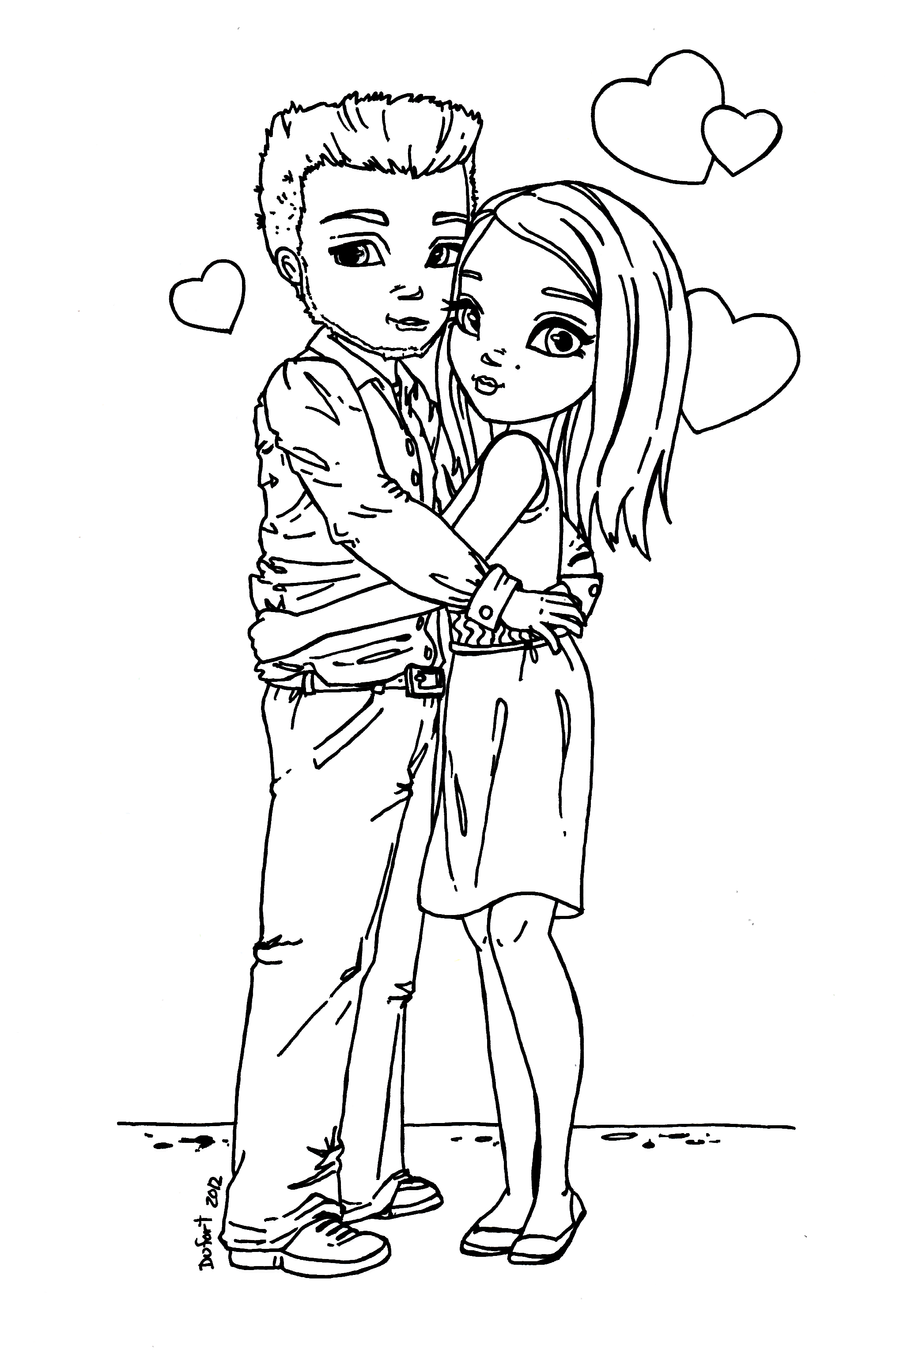 Young Couple - lineart by JadeDragonne on DeviantArt